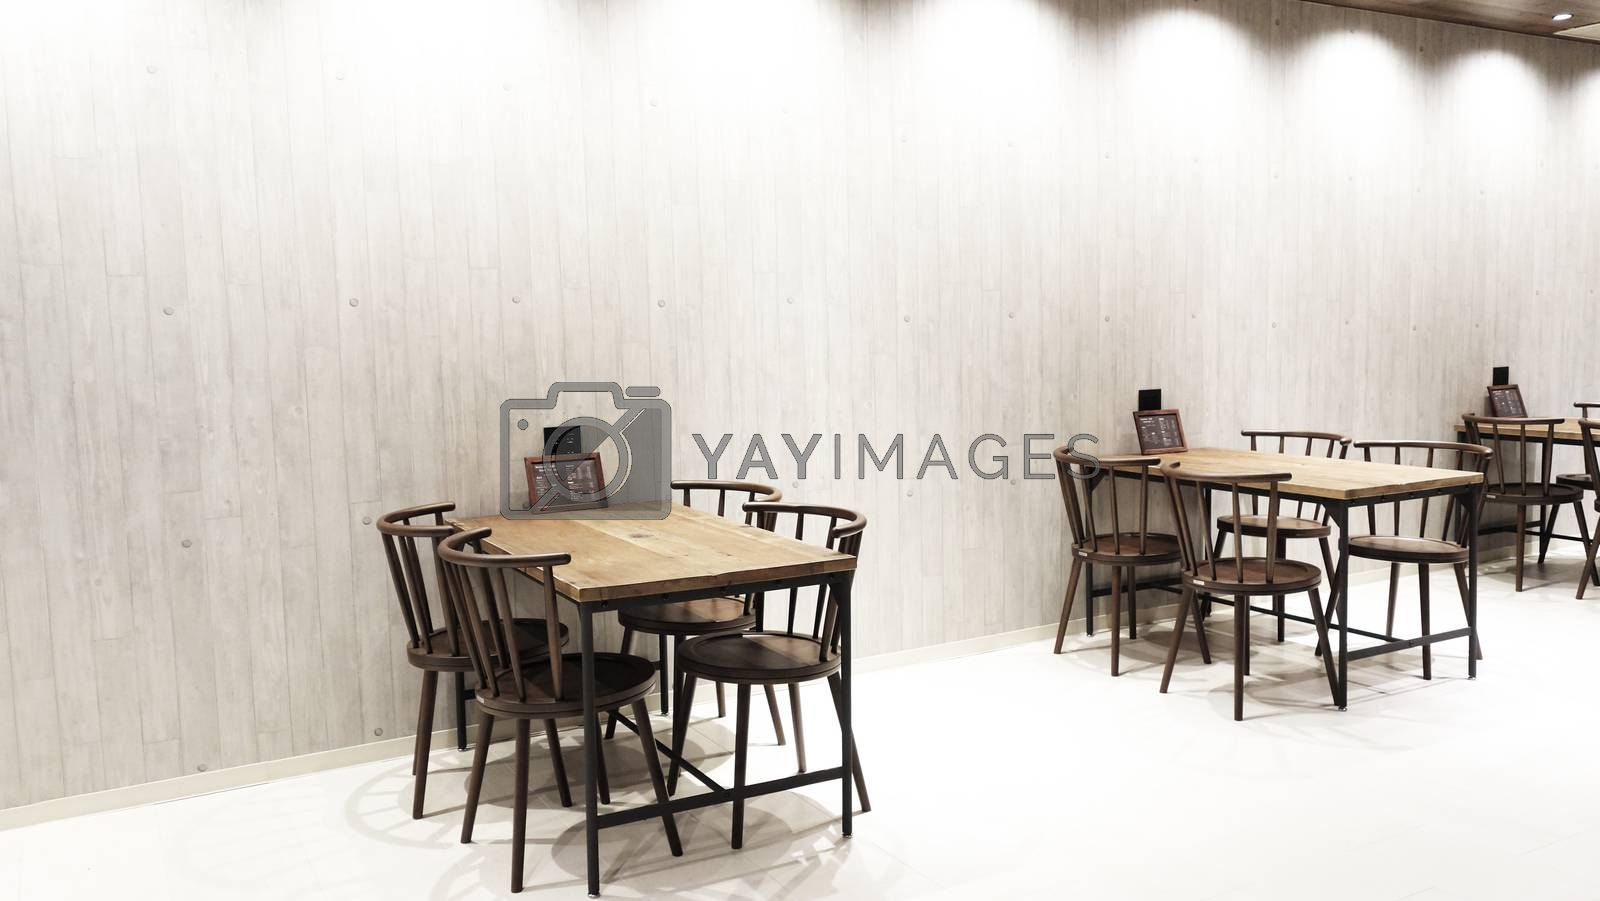 Wooden table and chair in the restaurant . Interior of restaurant food and beverage cafe with wooden table and chairs, food menu on the tabble and vintage wooden background.